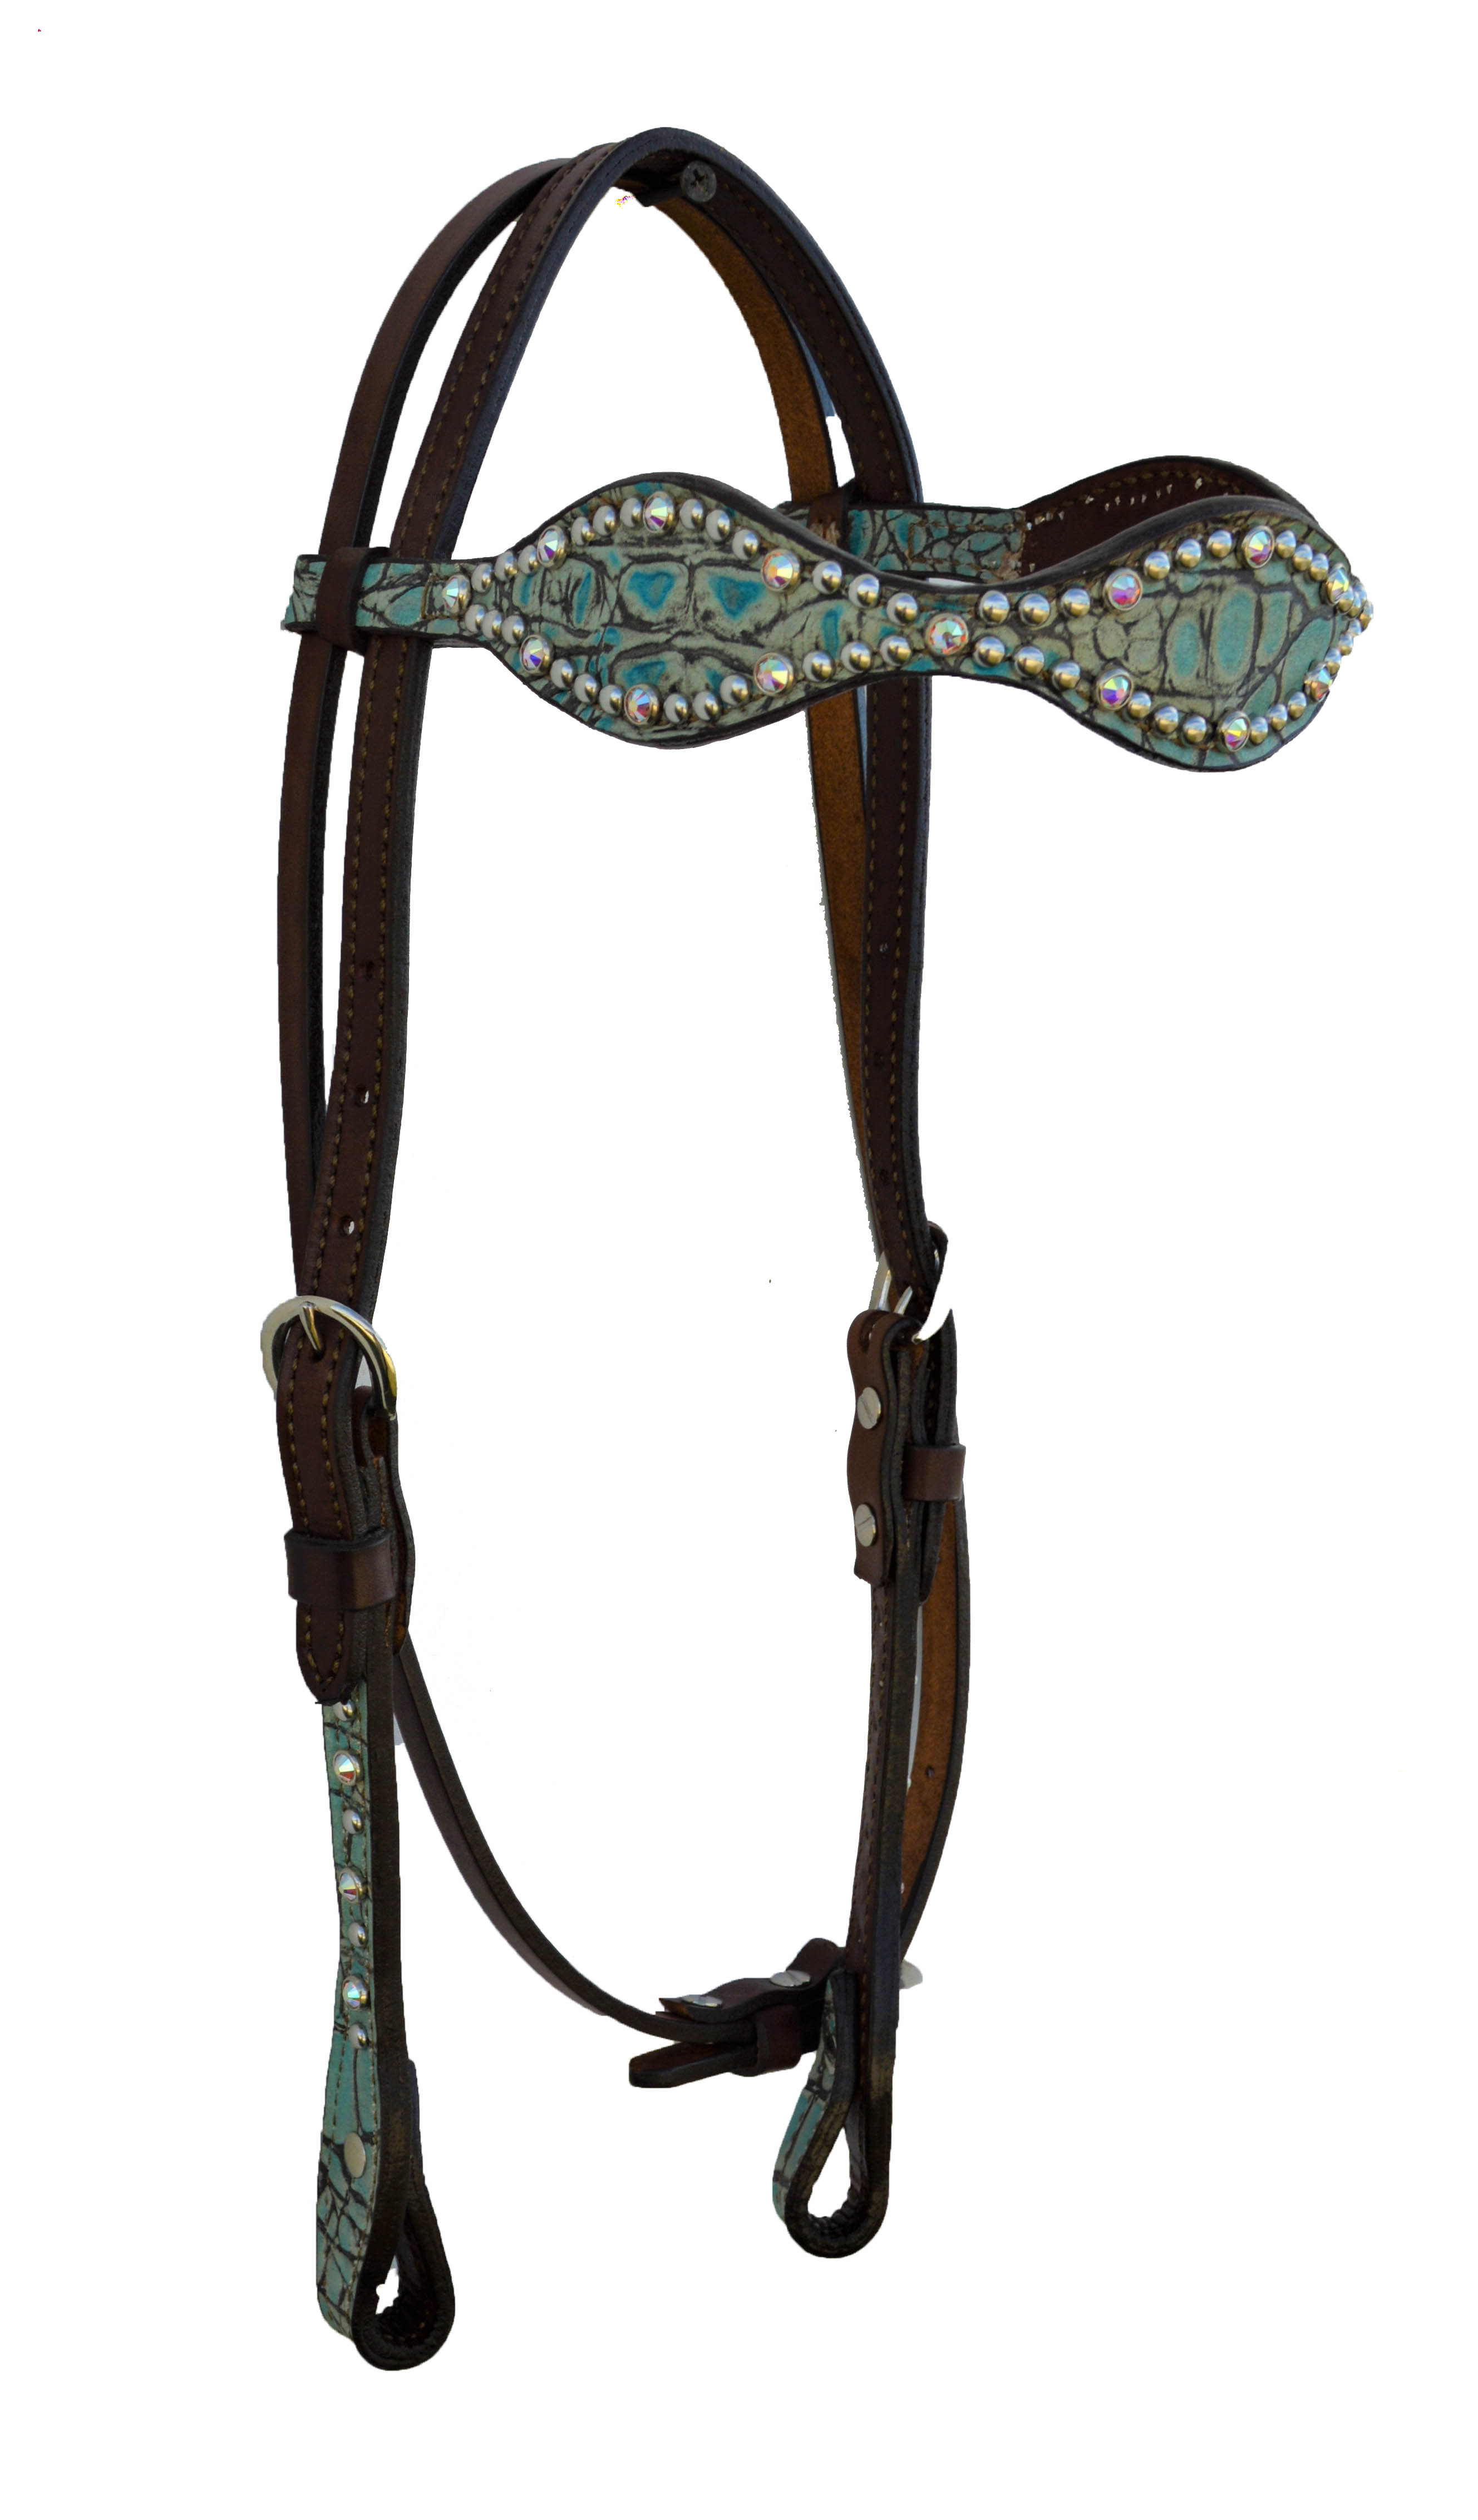 2065-JGT Scalloped Turquoise Gator Headstall